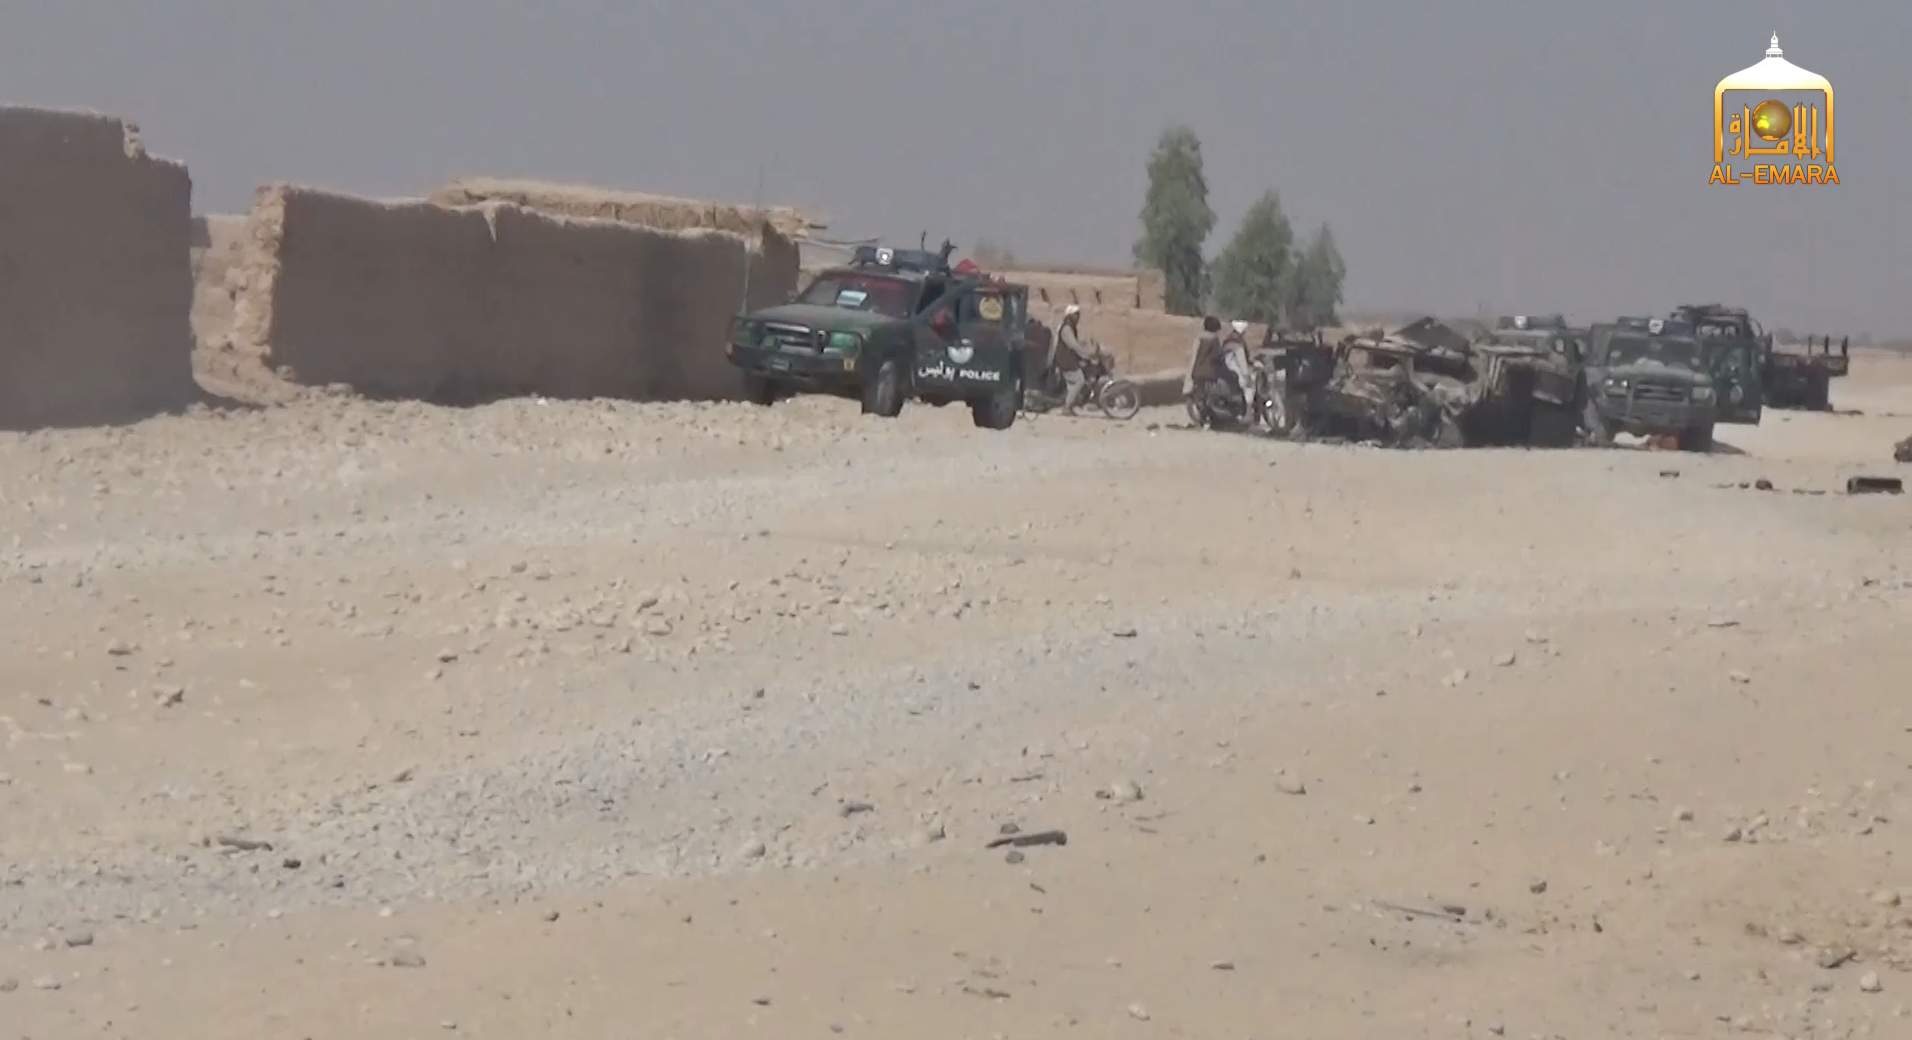 Taliban ambush